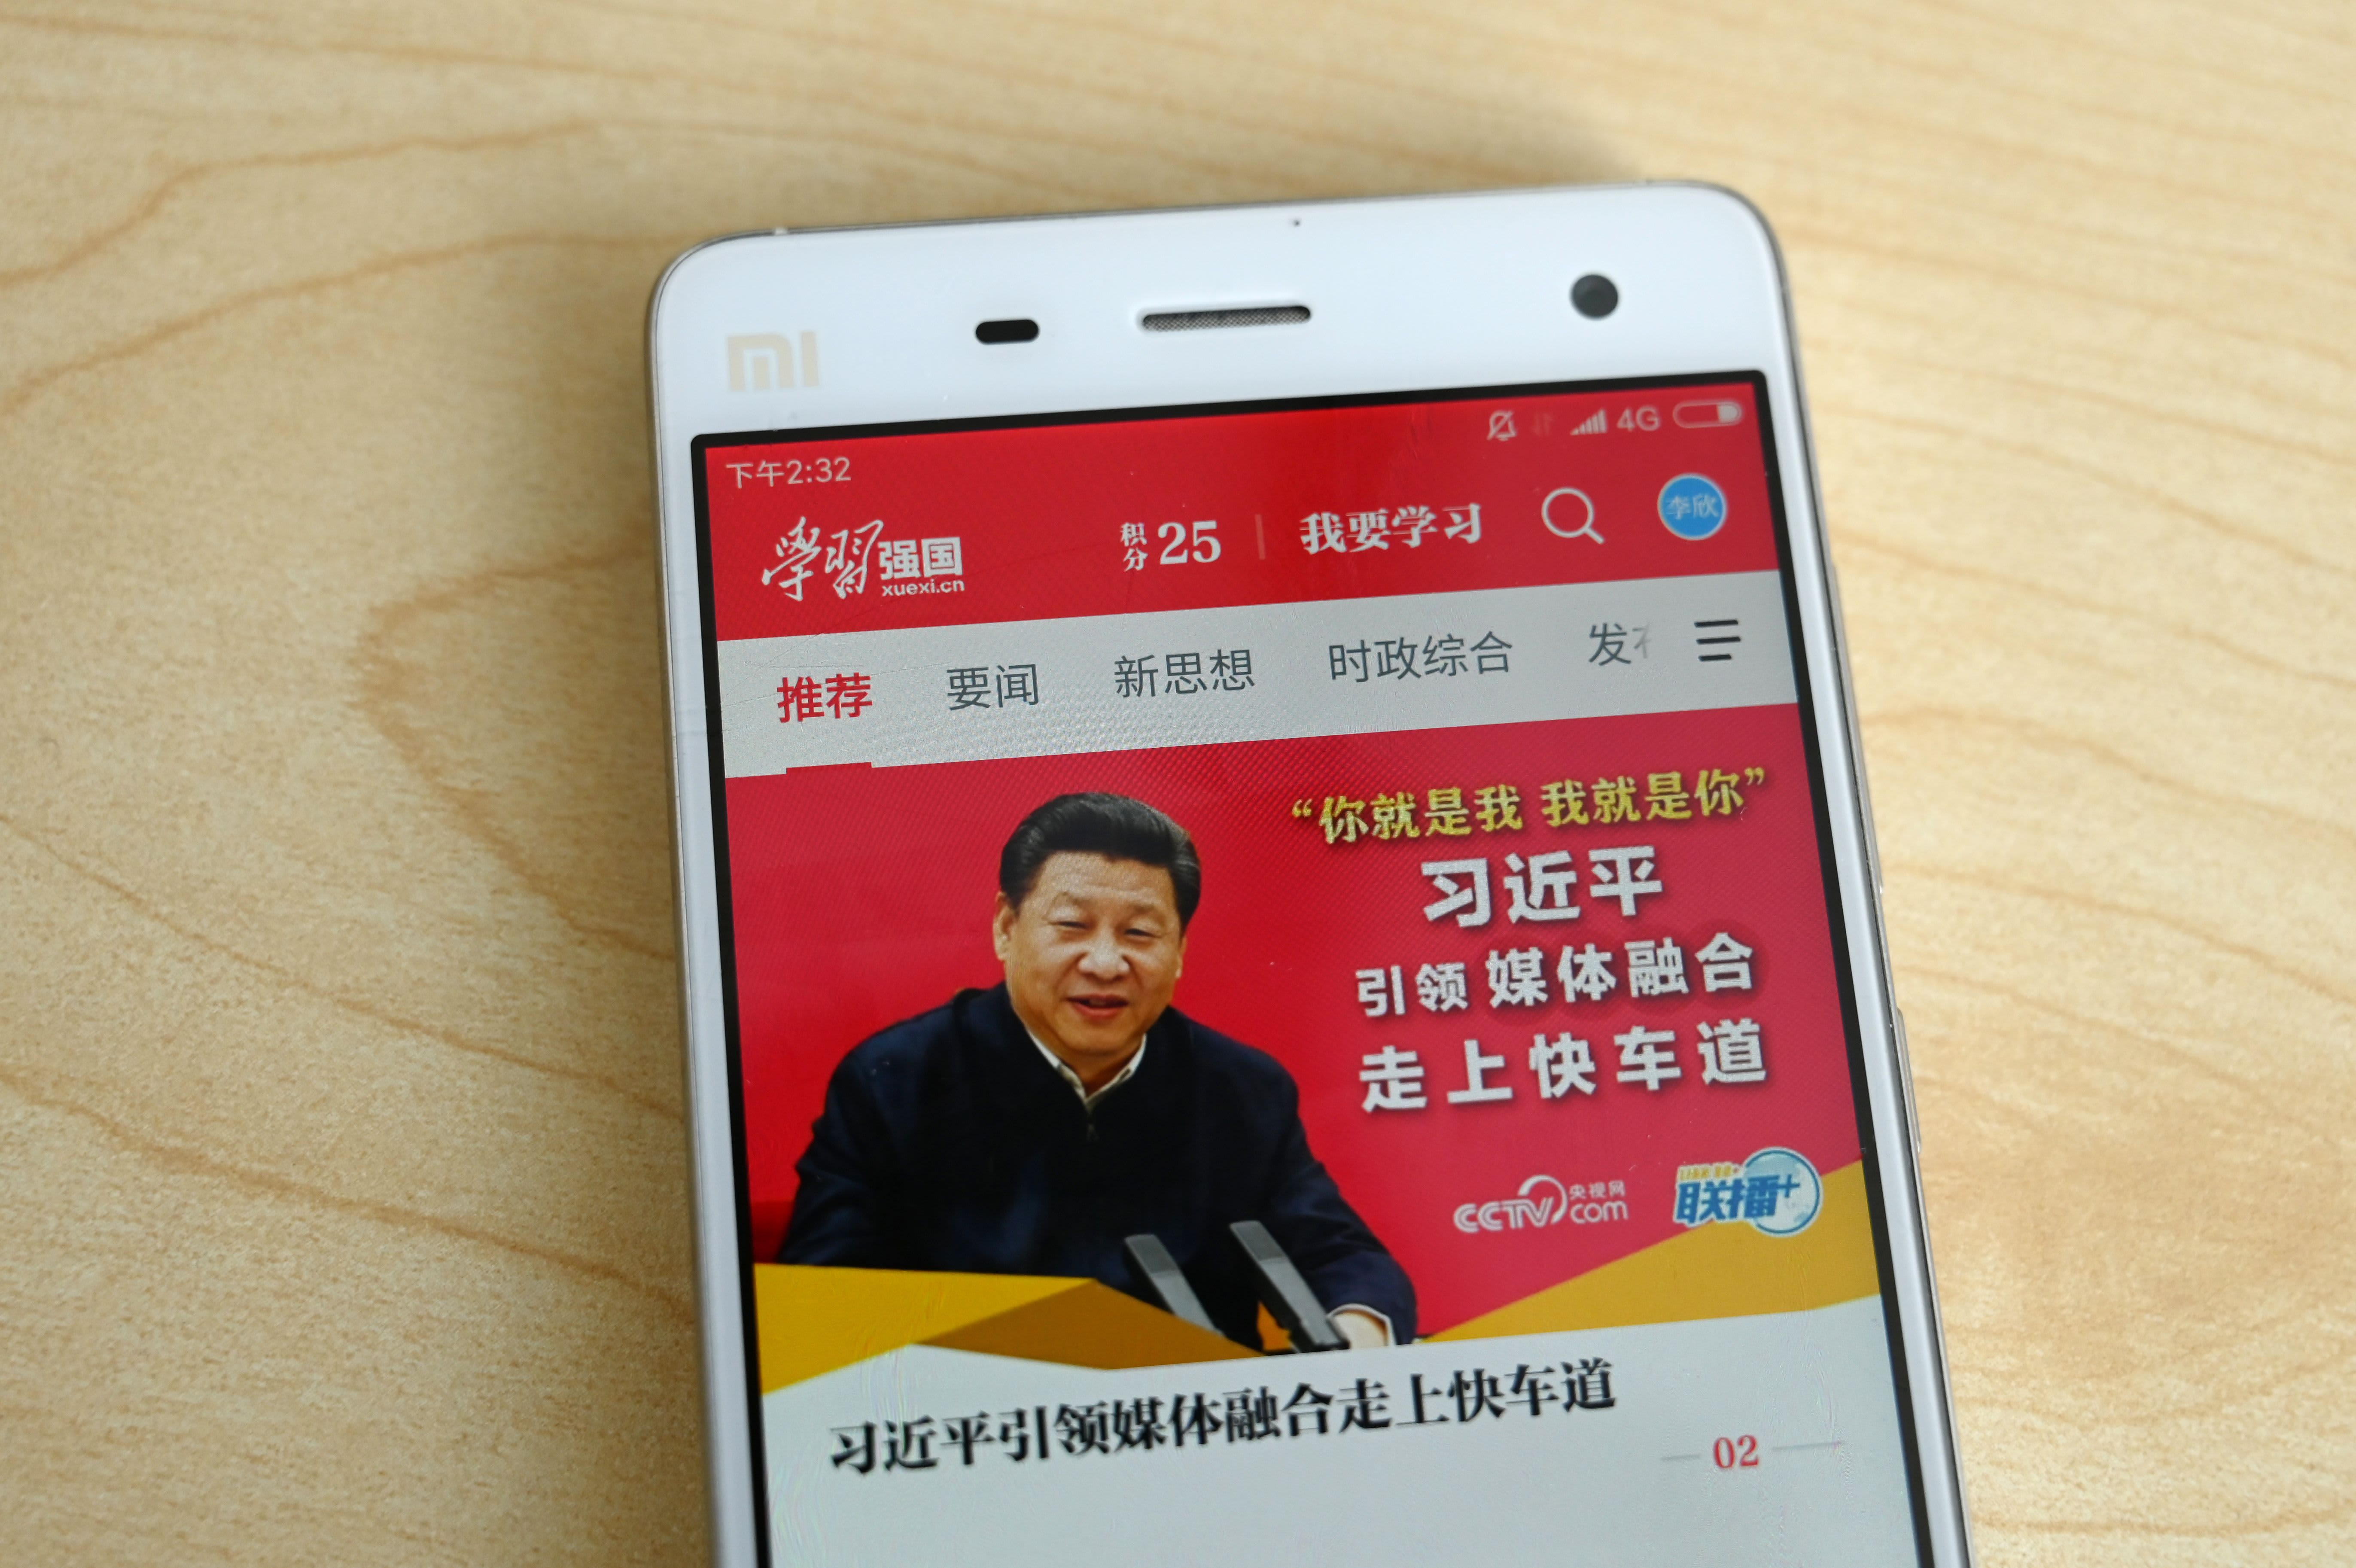 Chinese app pushing Xi's ideology has 'backdoor' that could let Beijing snoop on users, report says